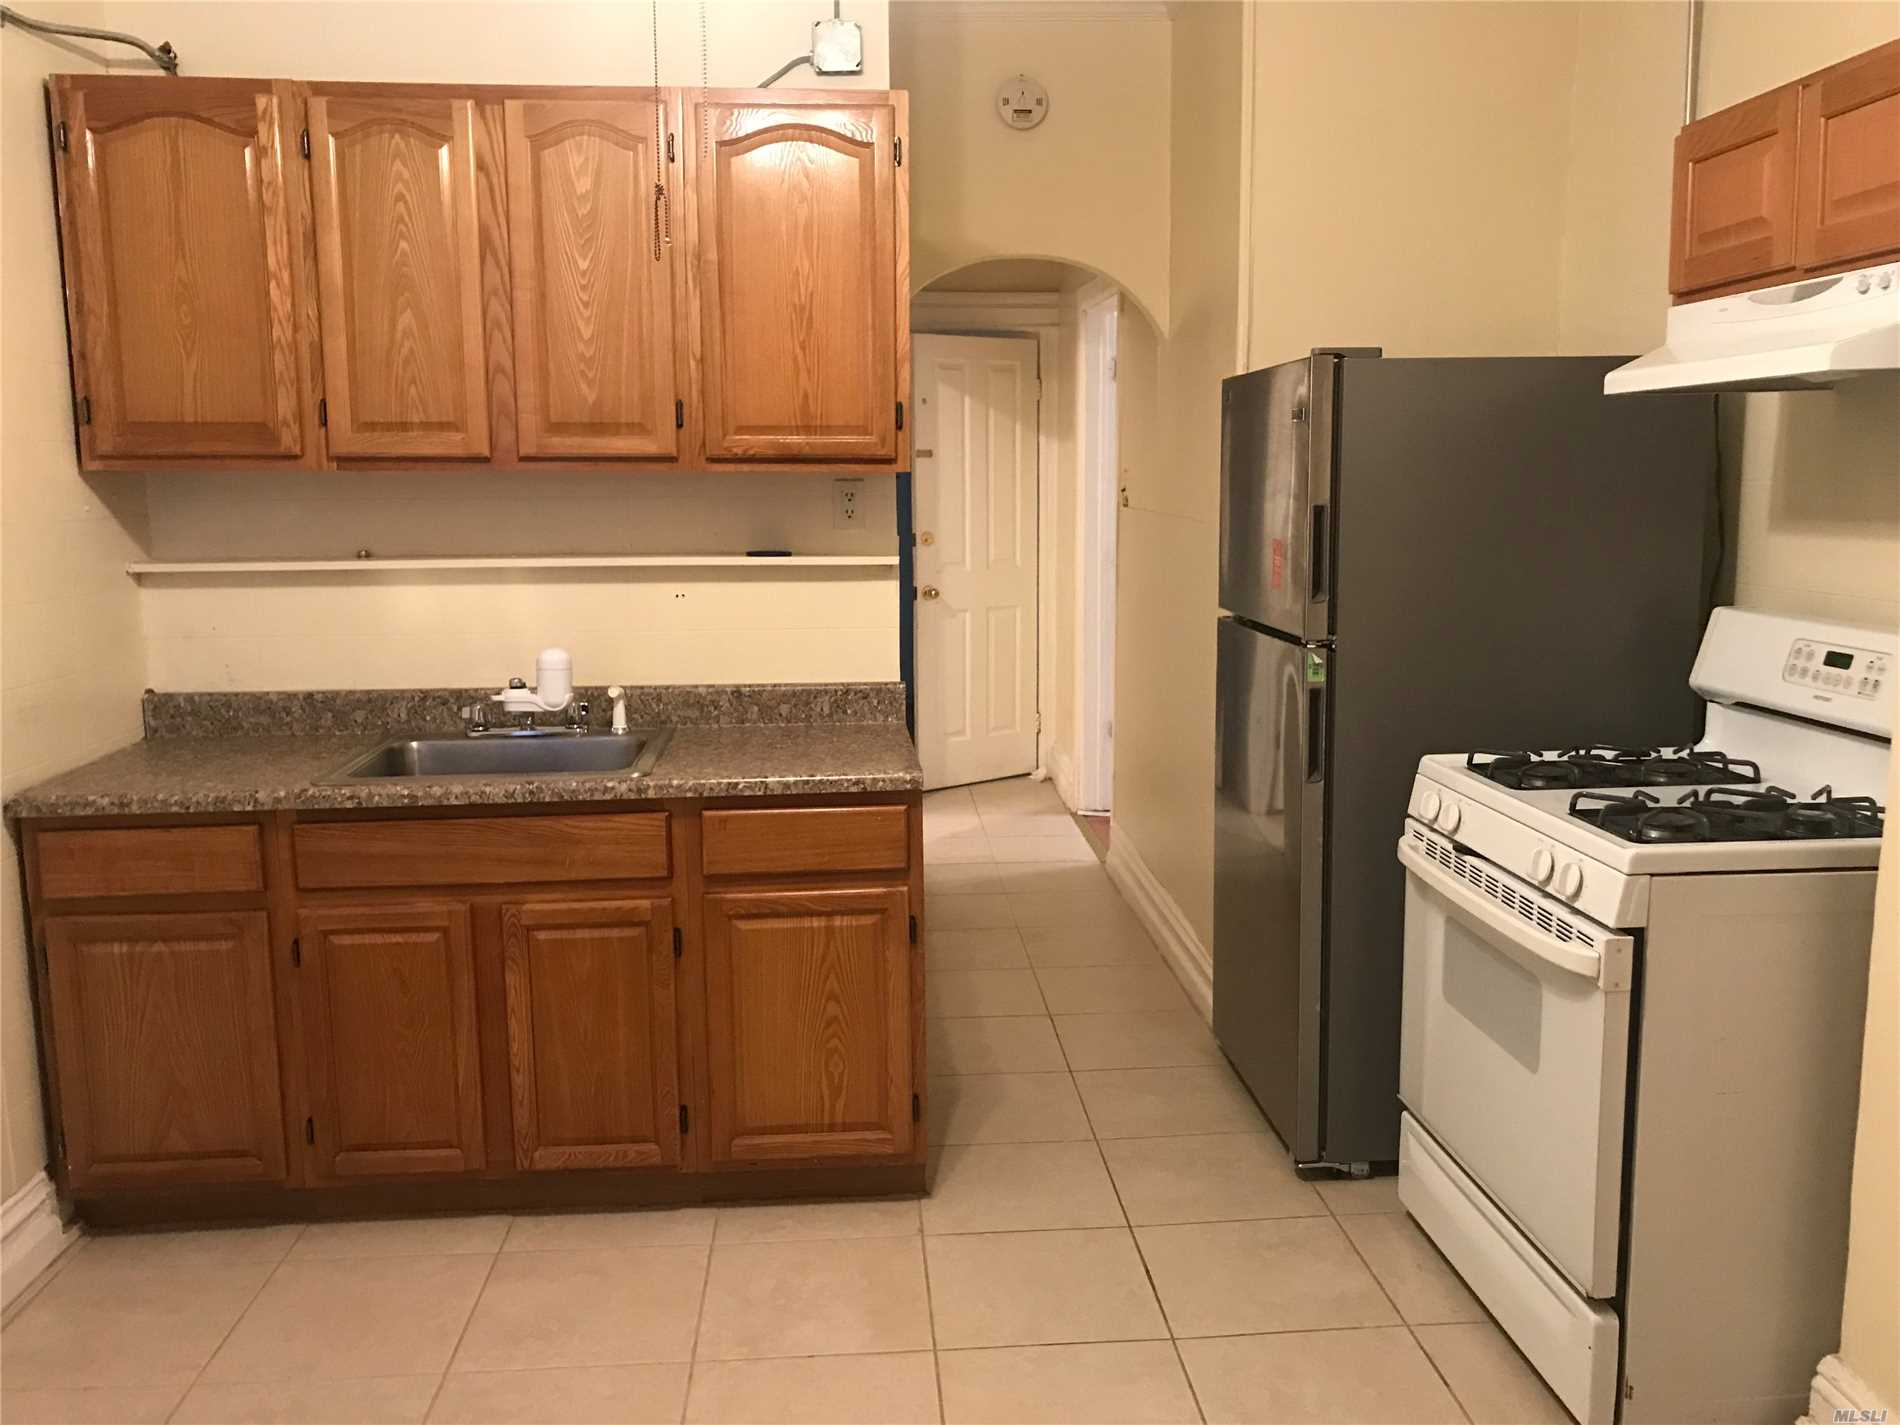 **Available** Spacious 3 Bed Rooms 1 Bath. Landlord Pays For Water And Heat. Close To Schools, Bus (Q29, 47, 54), Recreation Park And Shopping Center At Atlas Park. Flexible Showing.